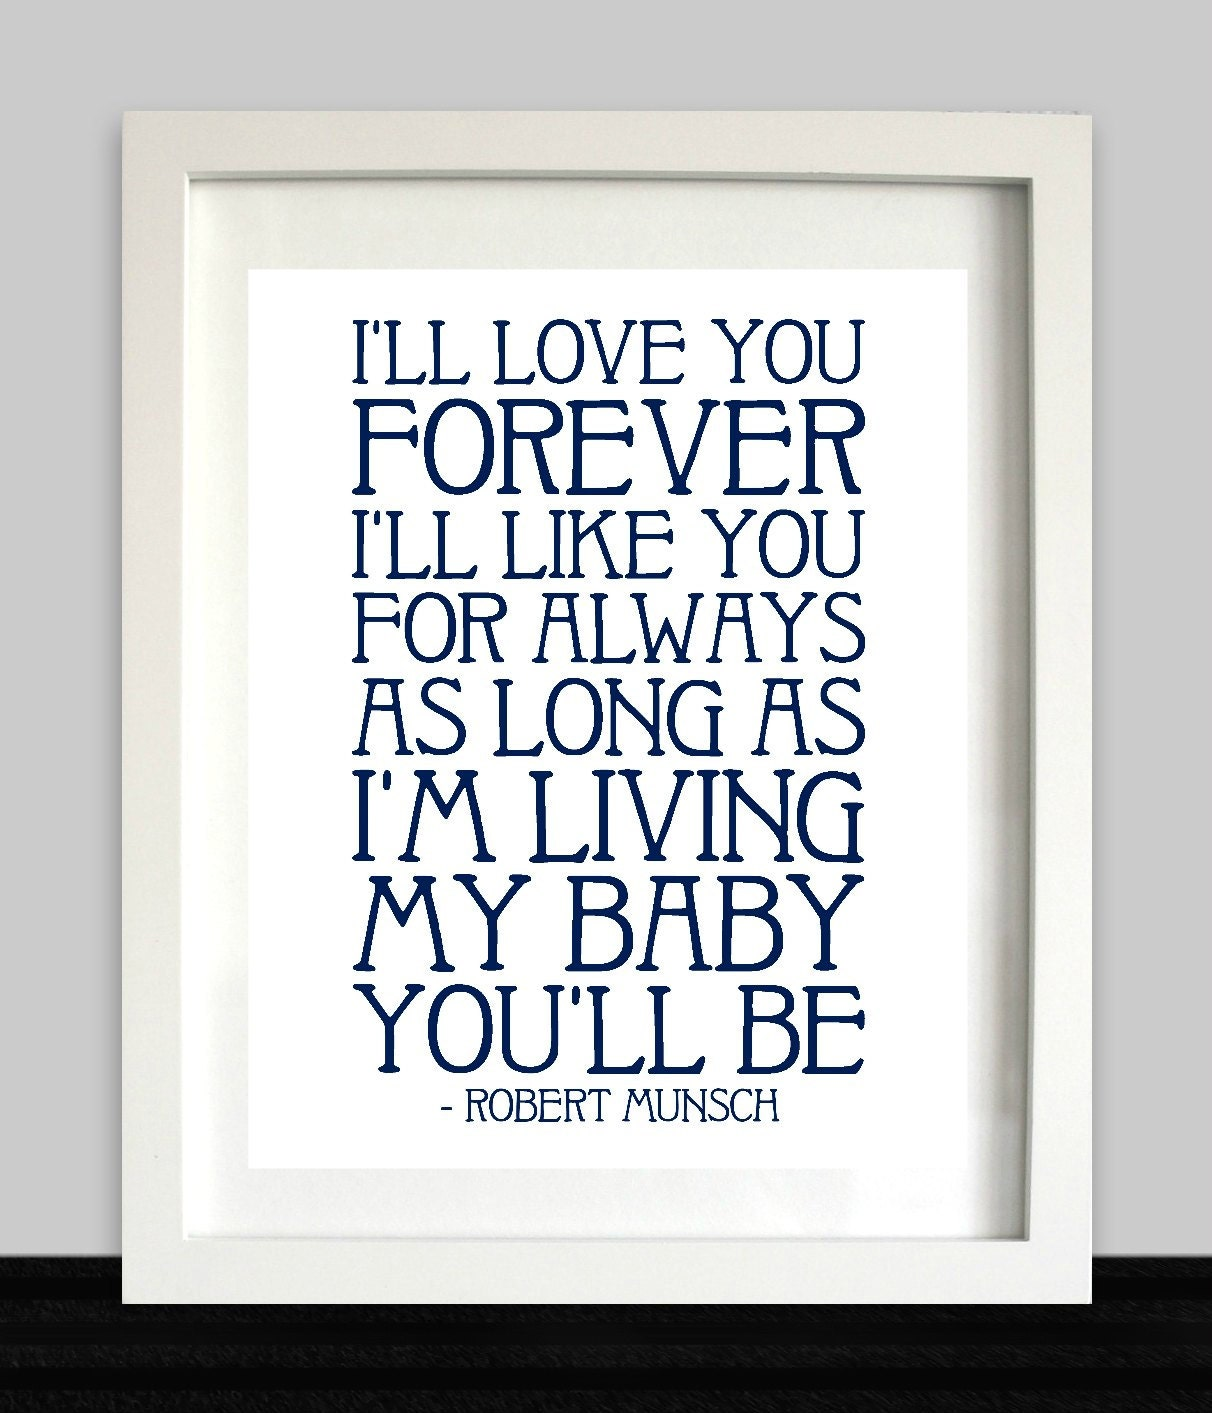 I Love You Forever I Like You For Always Quote I'll Love You Forever Printable  My Baby You'll Be